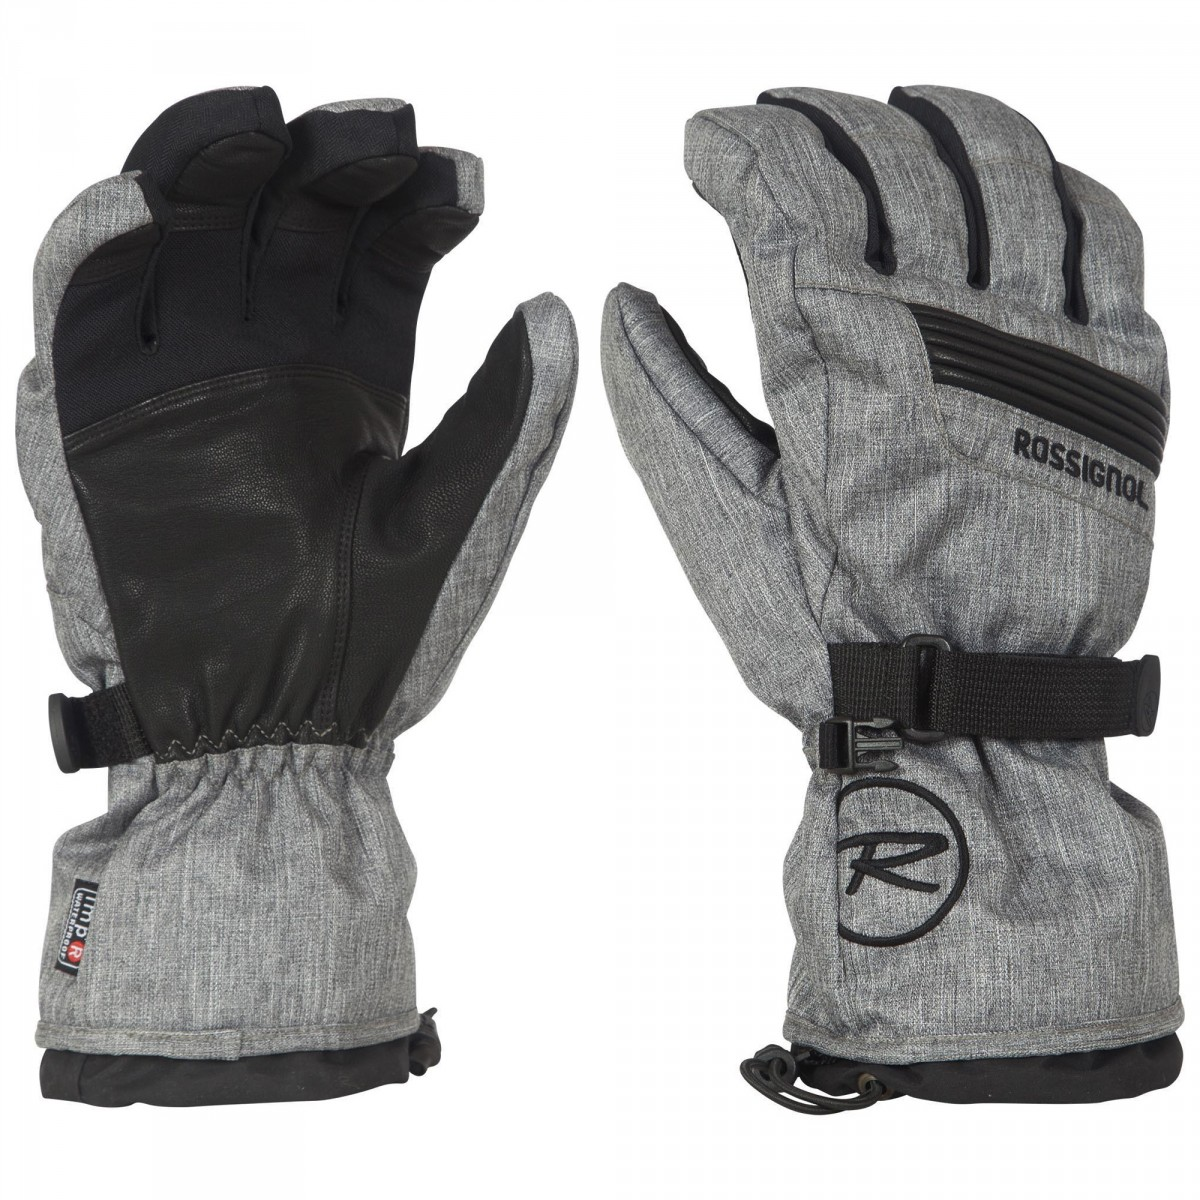 Ski Gloves Rossignol Storm Impr Man Ski And Snowboard Gloves